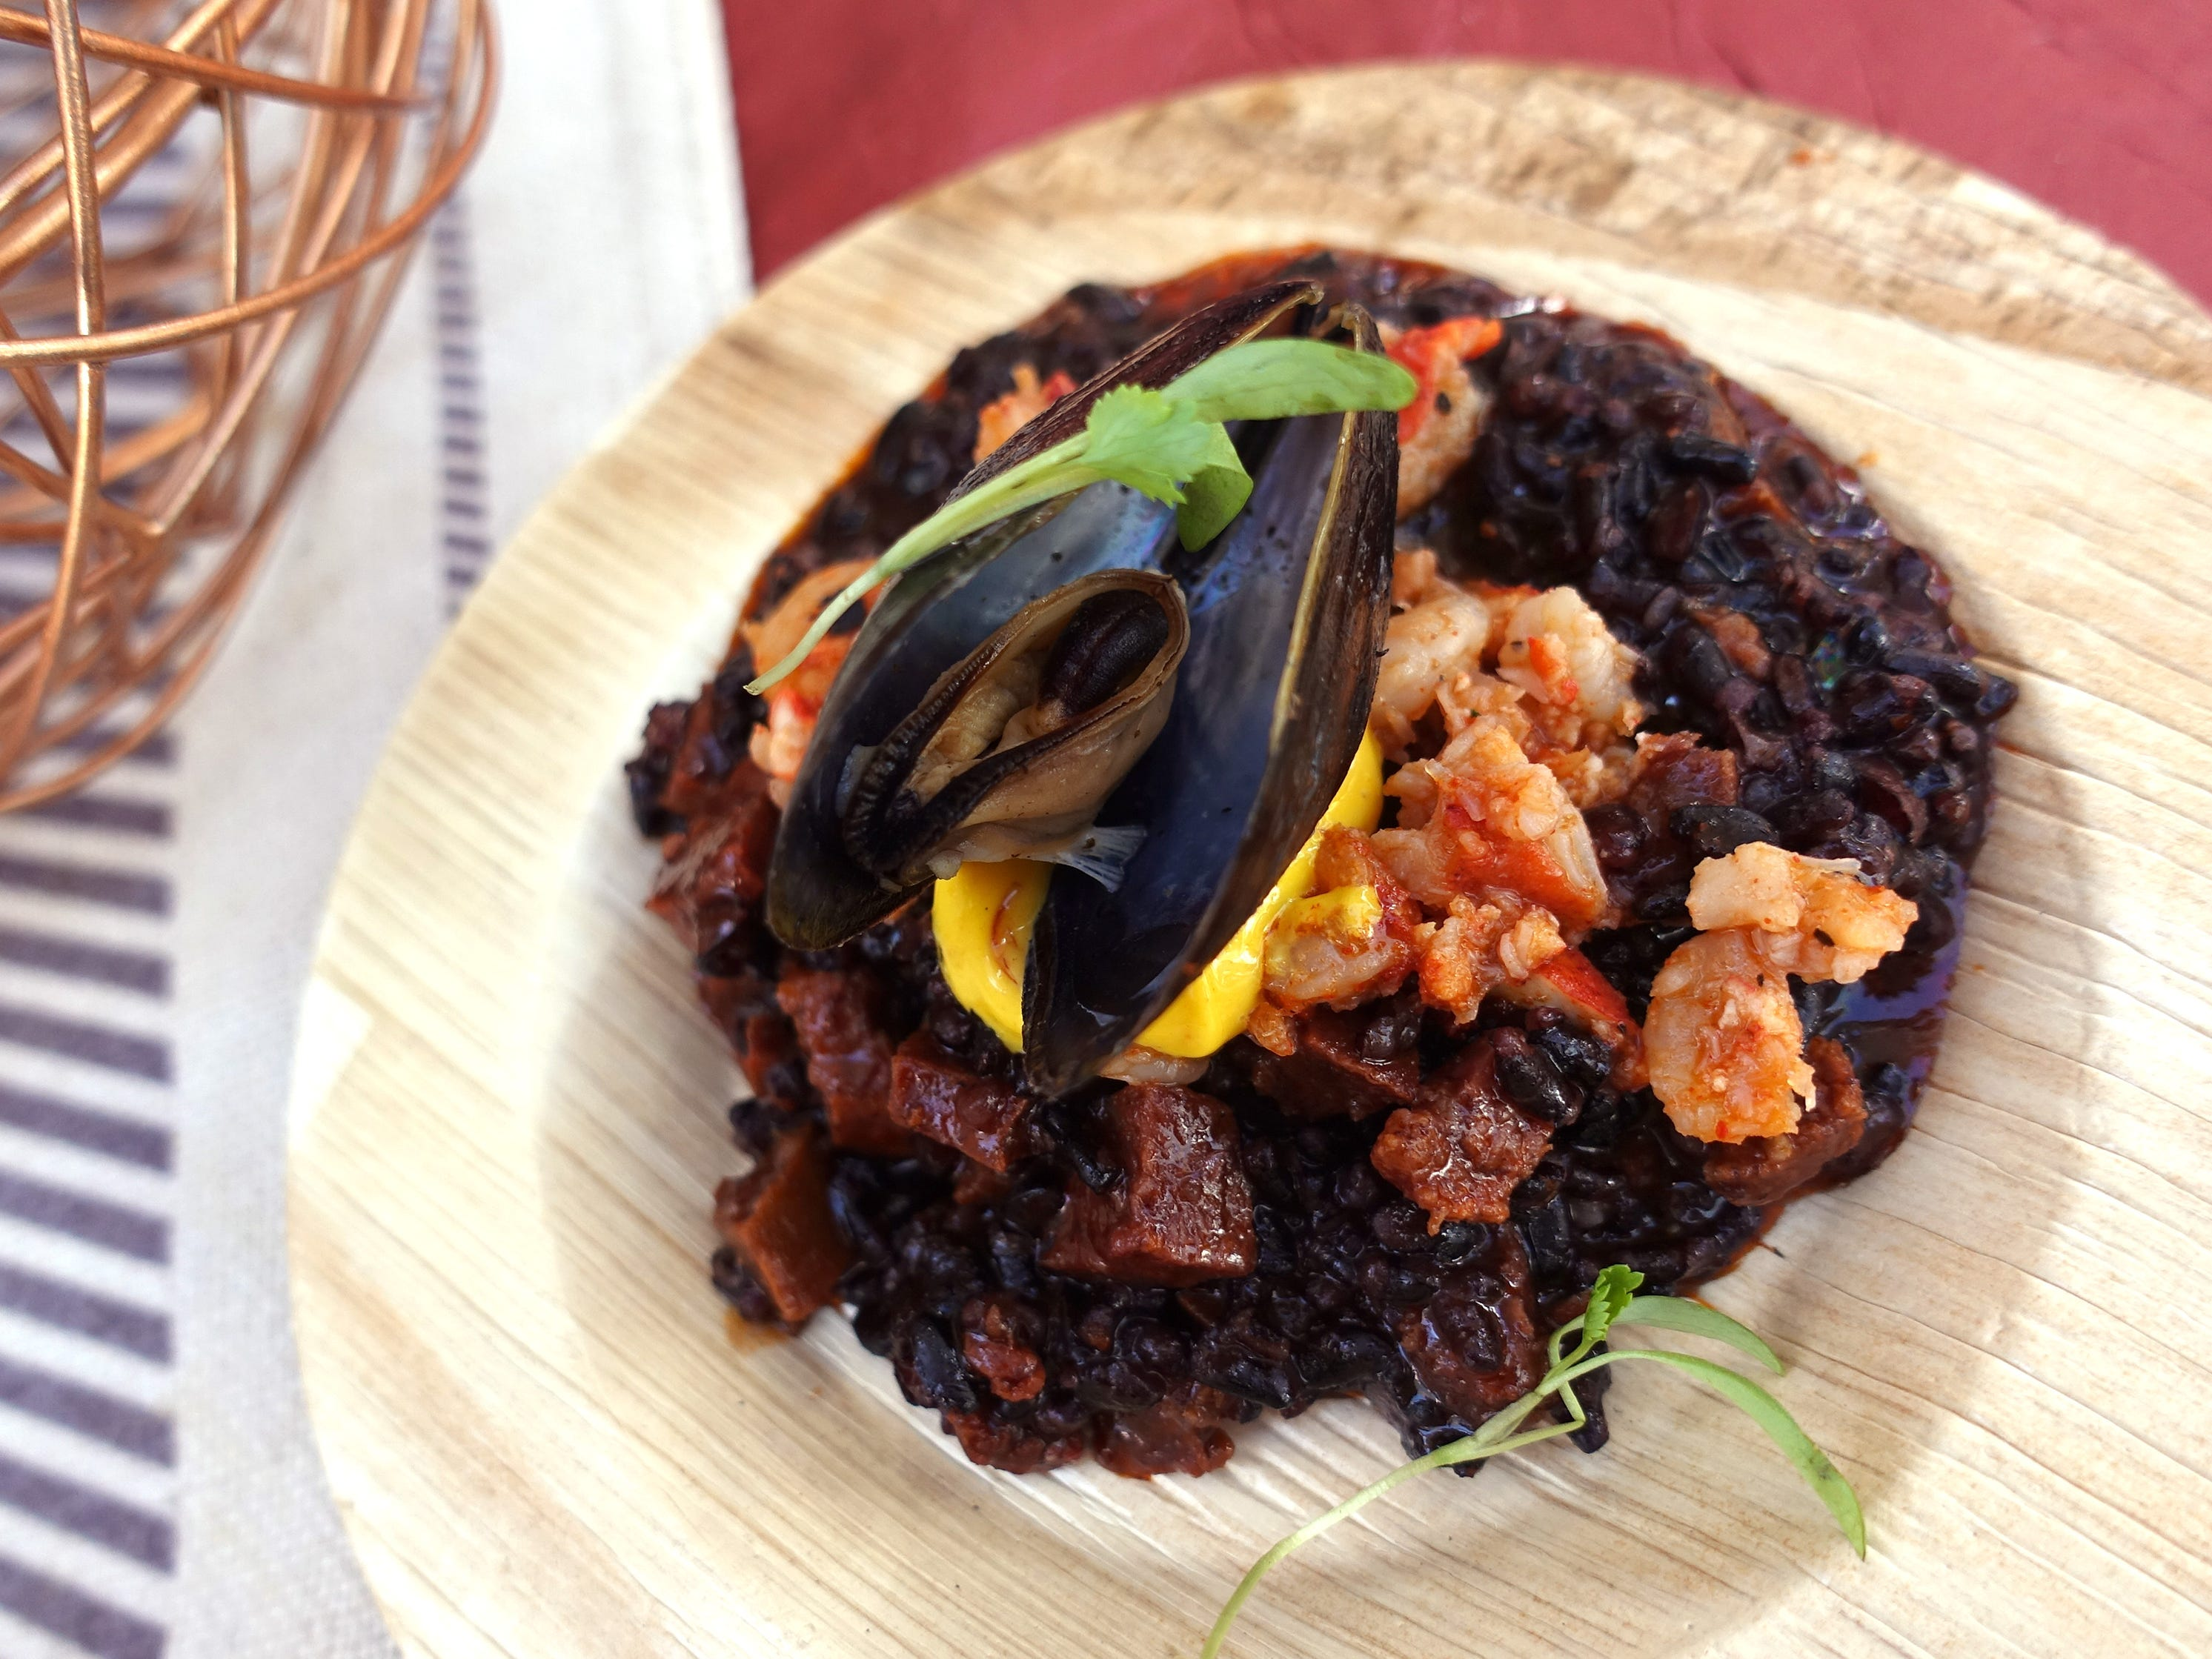 Arroz negro with forbidden rice, Maine lobster, bay shrimp, calamari, mussel, chorizo and saffron aioli from T. Cook's at the Devour Culinary Classic at the Desert Botanical Garden in Phoenix.